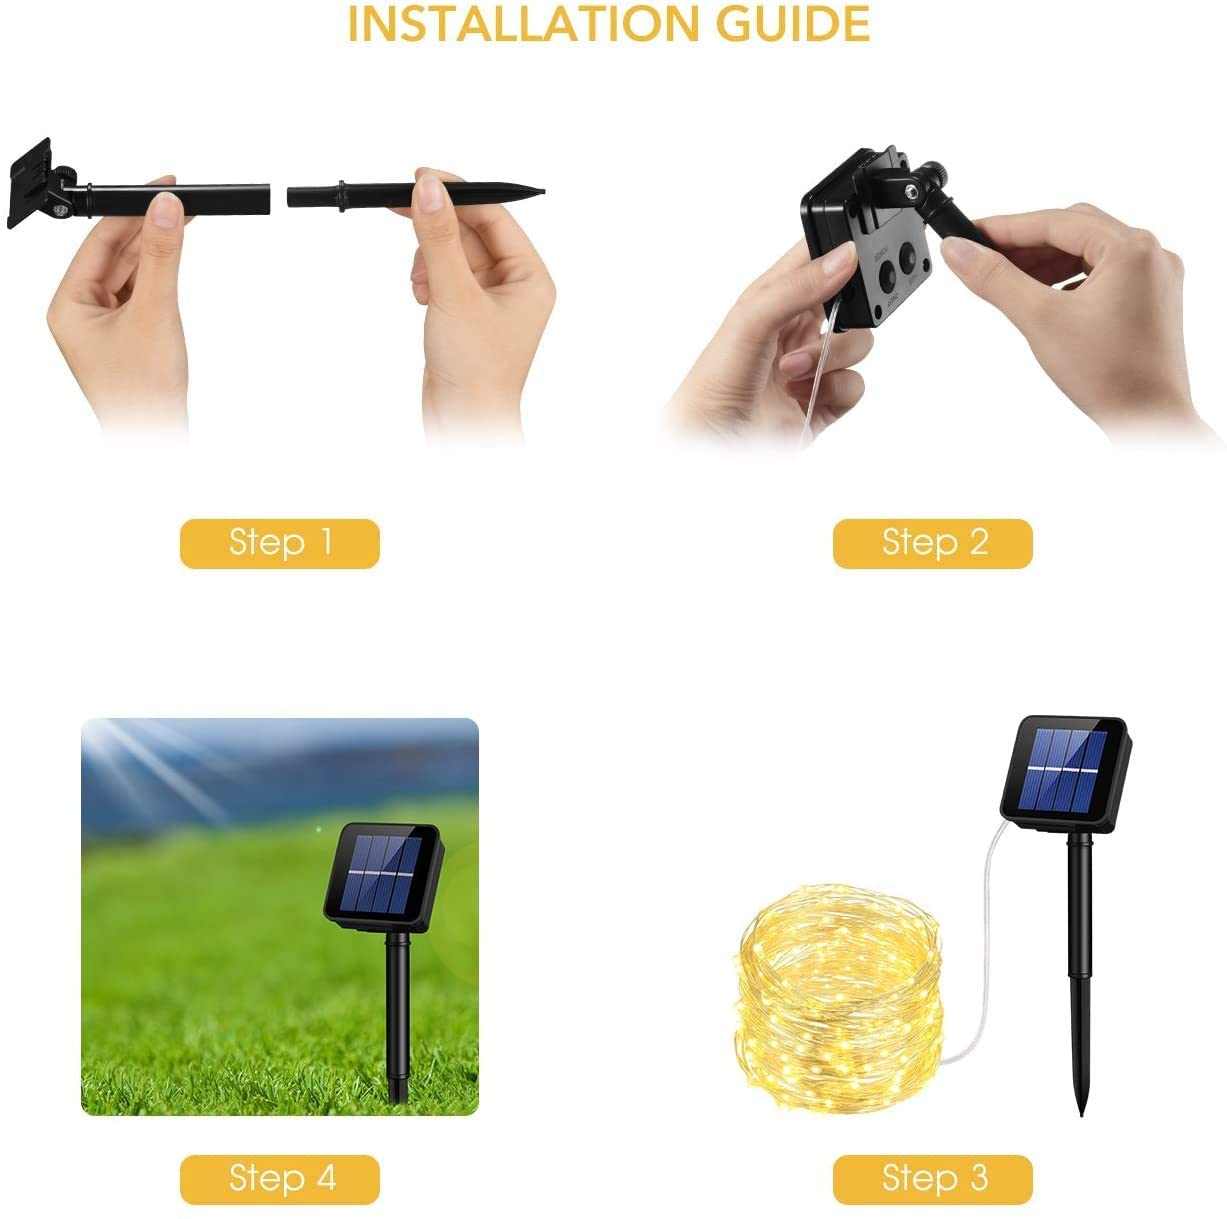 Hbd236ba136eb4296b72478edaed8d45eN - Led Outdoor Solar String Lights Fairy Holiday Christmas For Christmas, Lawn, Garden, Wedding, Party and Holiday(1/2Pack)